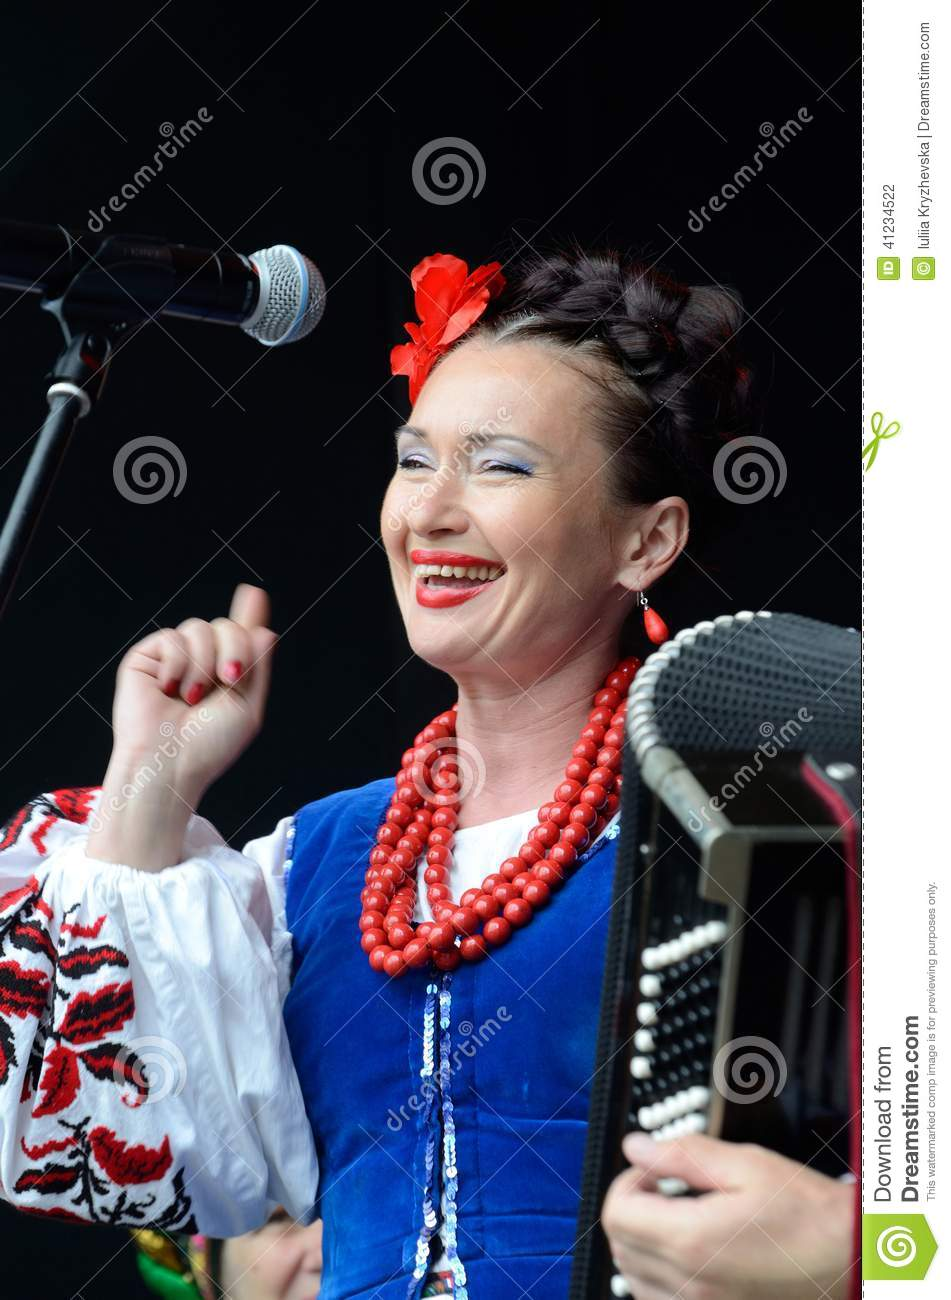 Music khevnix ukrainian ladies singing